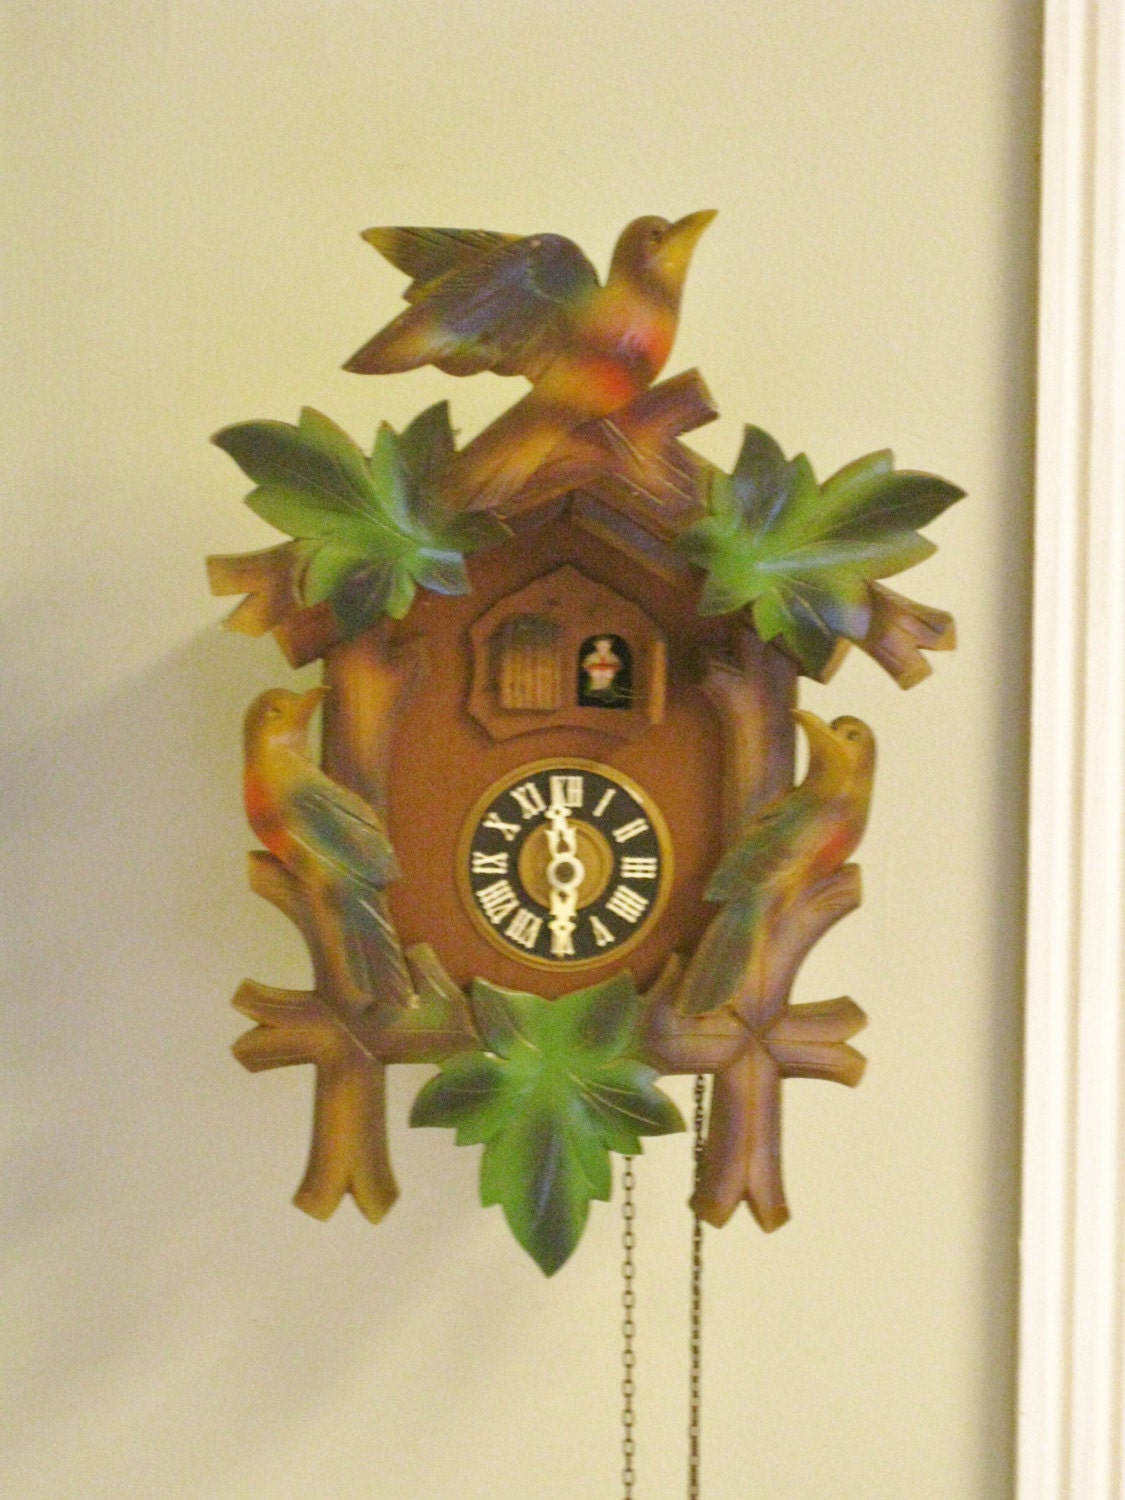 Vintage german cuckoo clock colorful non working decorative - Colorful cuckoo clock ...